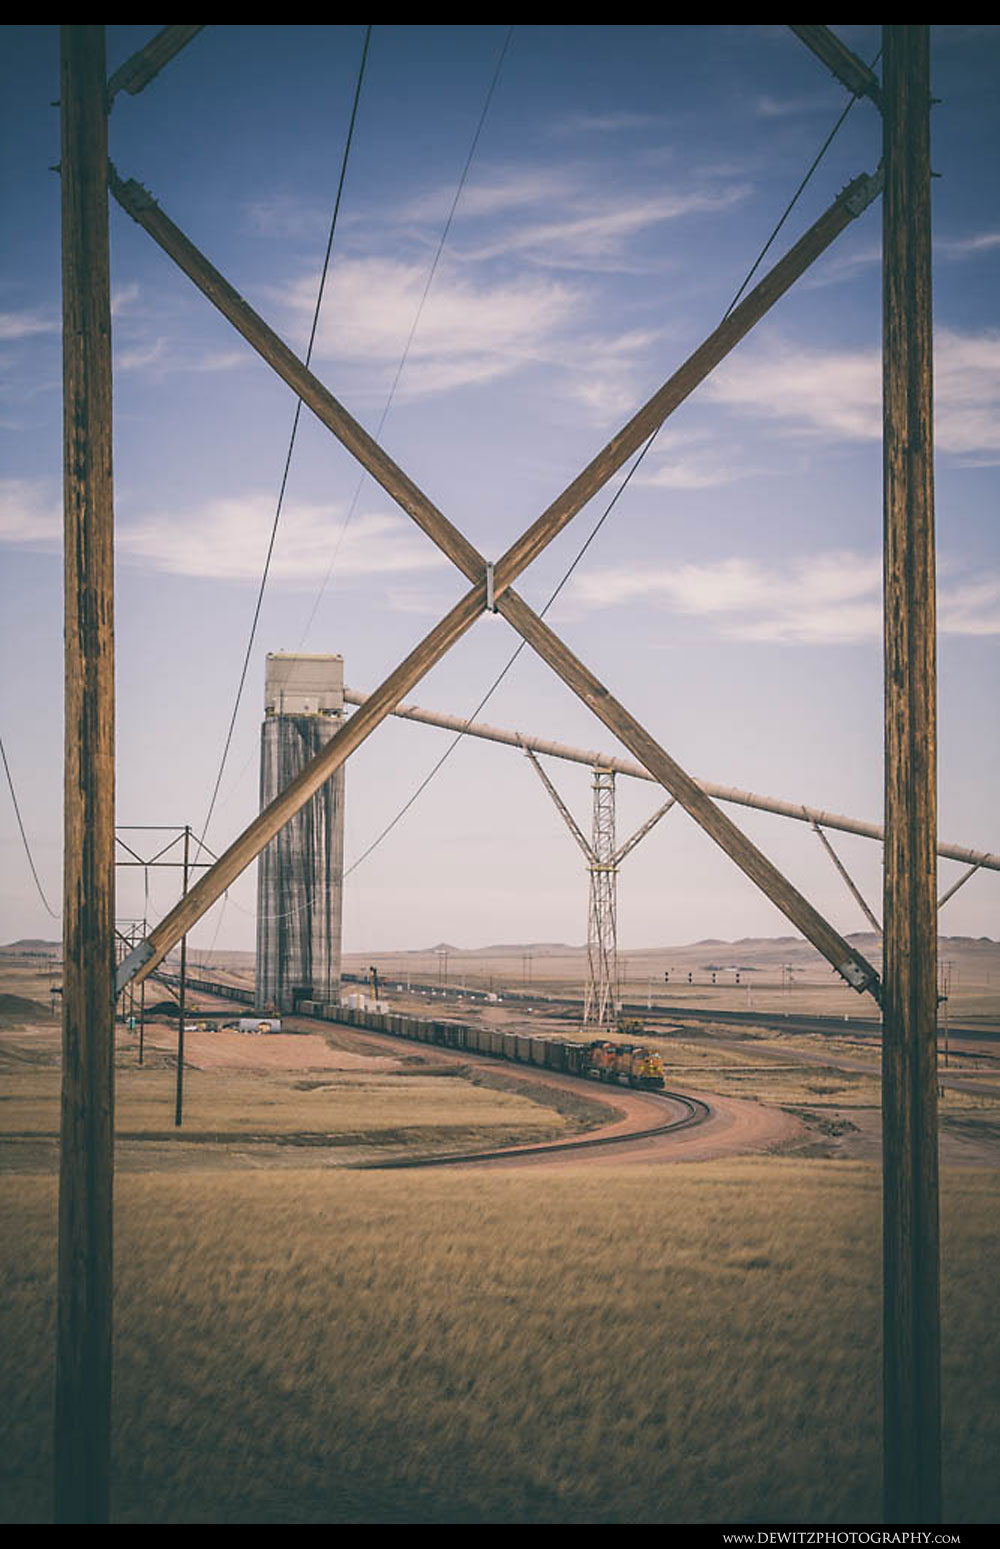 52Coal Silos and Power Lines